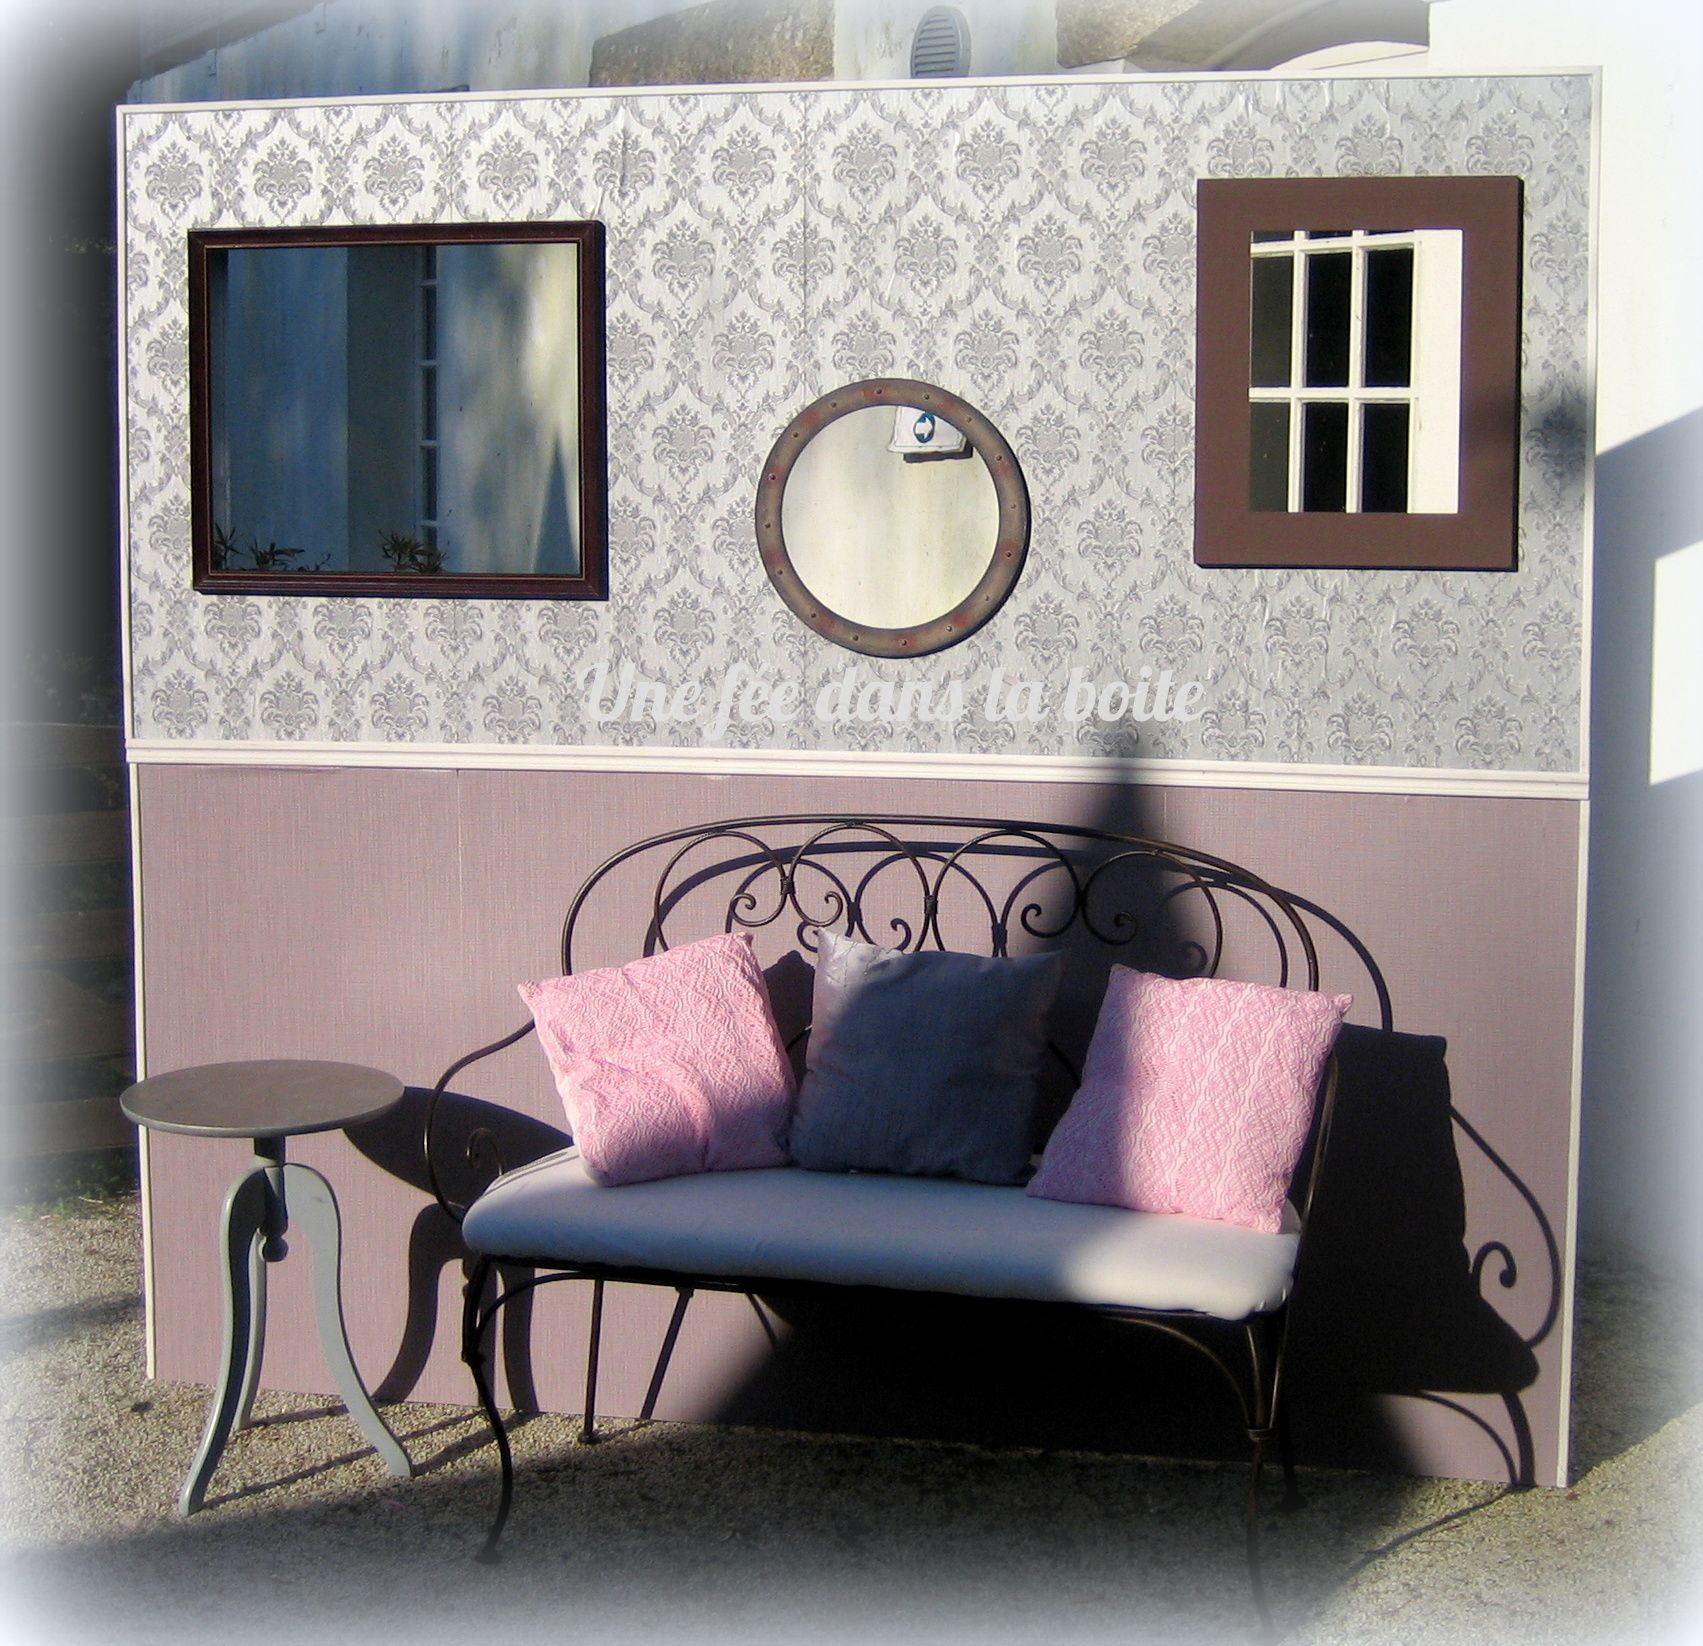 mariage romantique en rose gris et jaune pale le d cor photobooth et ses cadres trous en. Black Bedroom Furniture Sets. Home Design Ideas